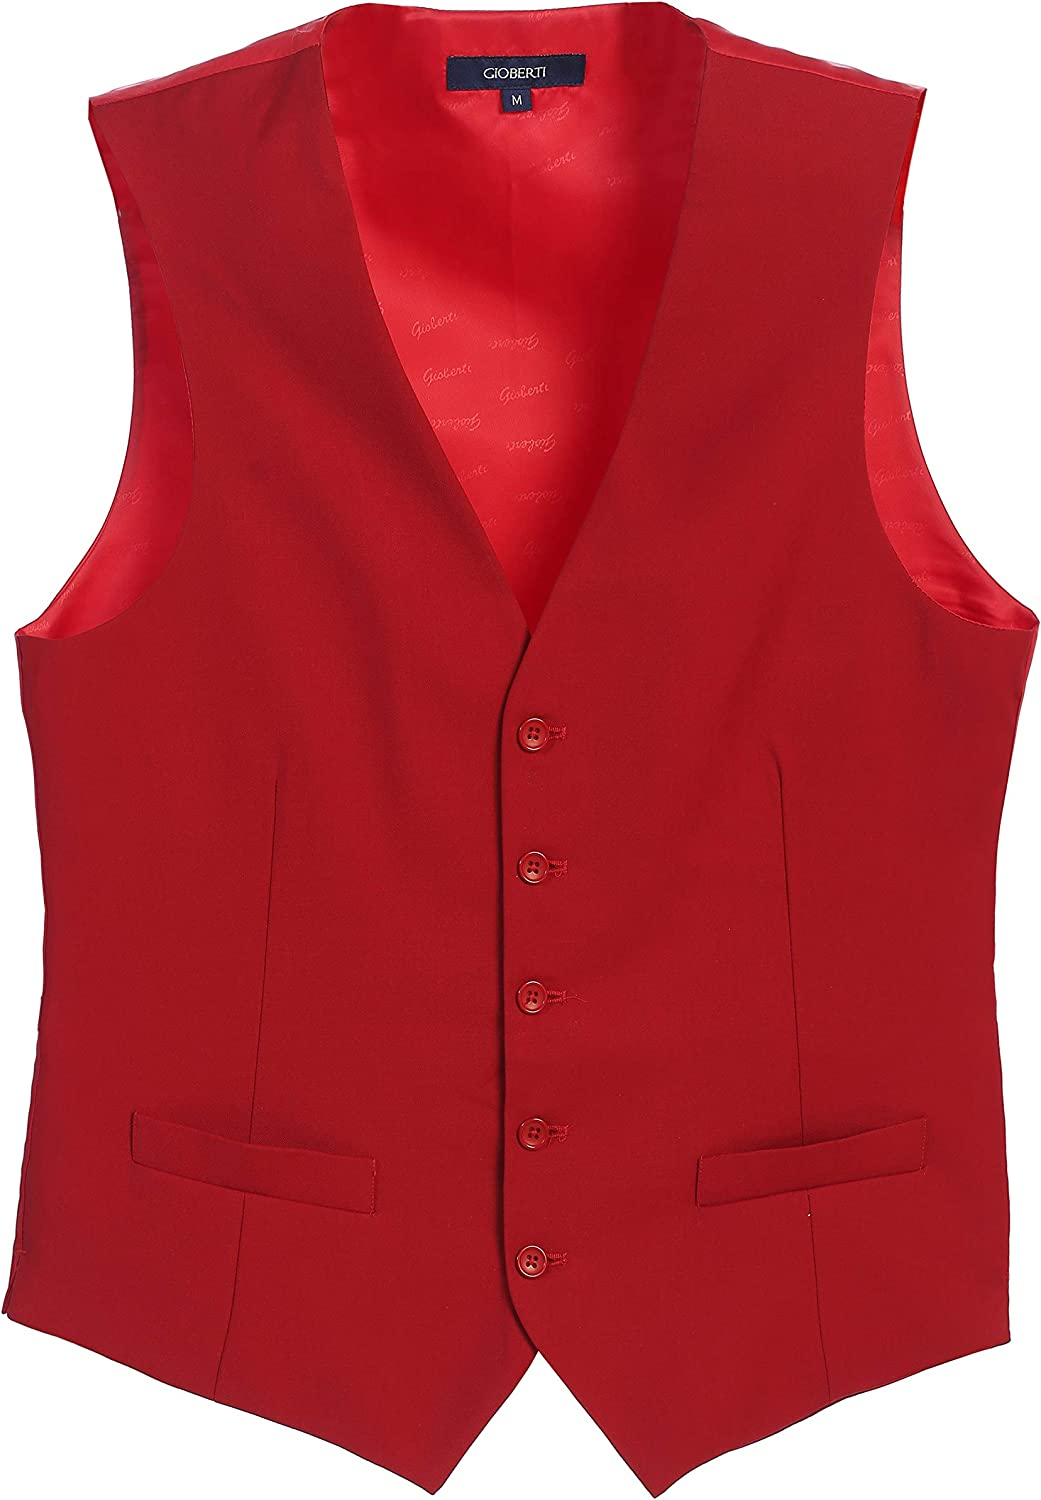 safety Special price for a limited time Gioberti Mens Formal Vest Suit